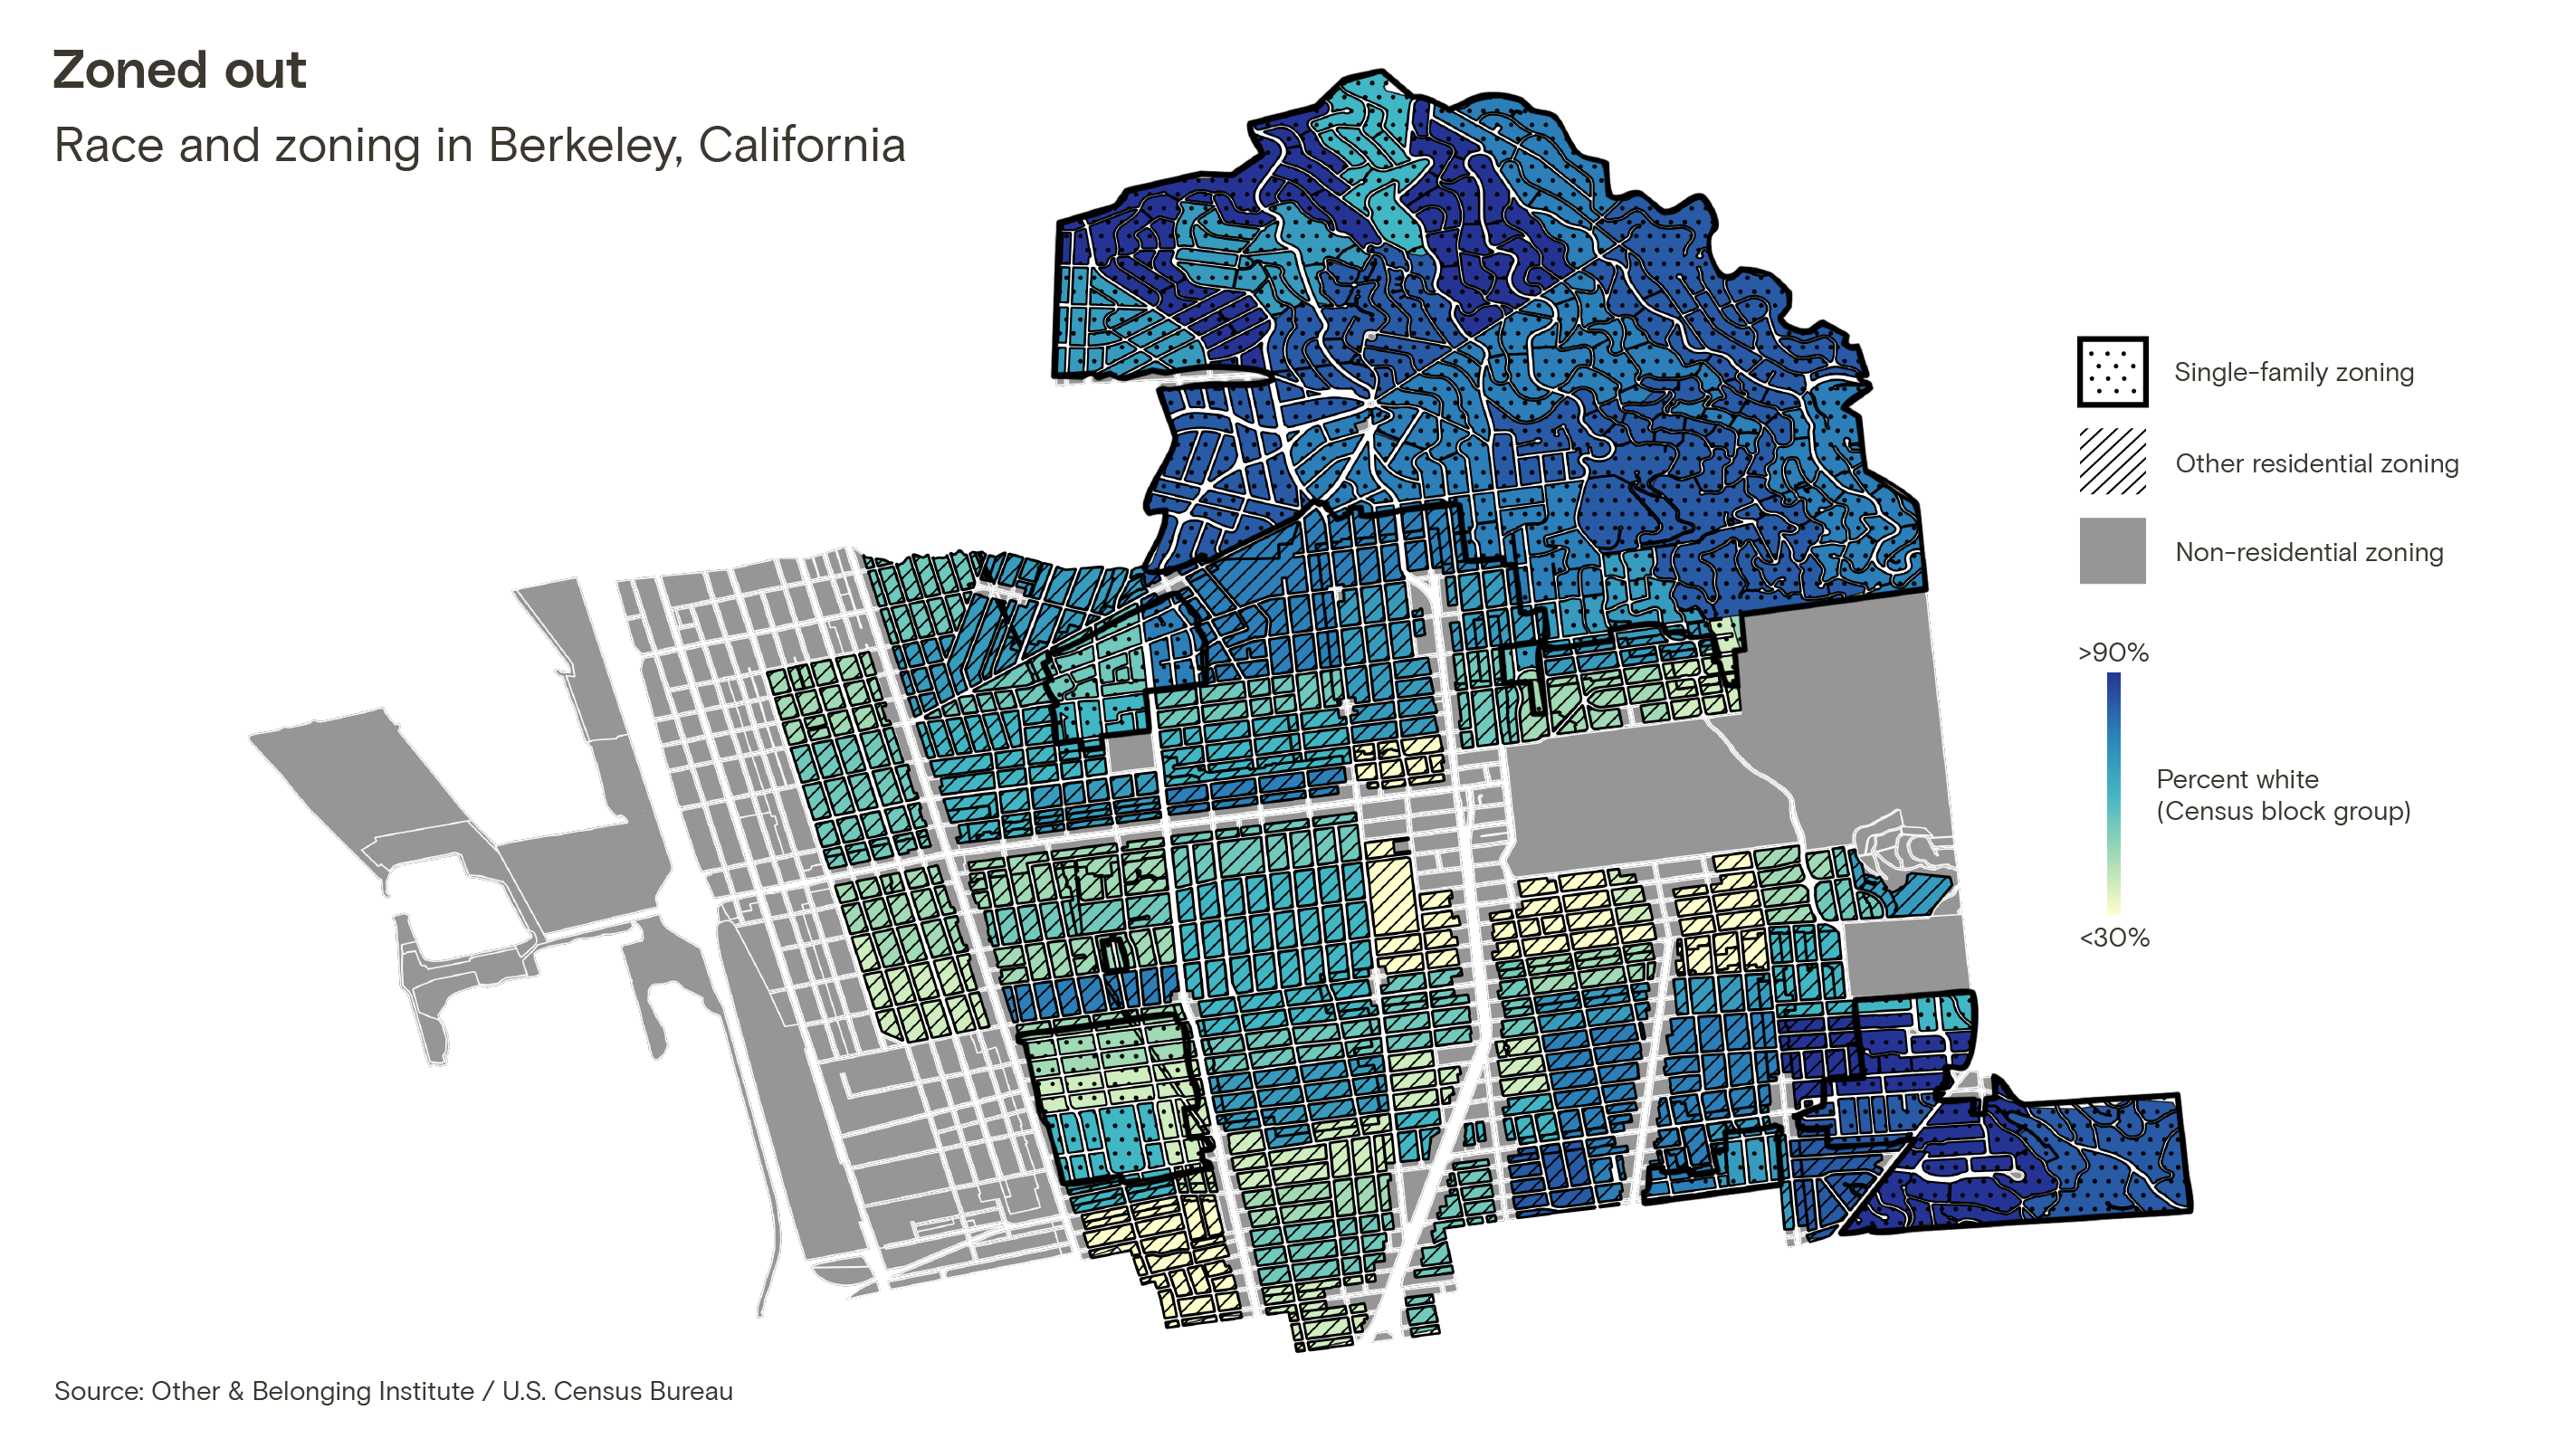 A map of Berkeley showing residential zoning categories and race by Census block group (using a blue-green color scale, in which a higher percentage of white people is represented by a darker shade of blue). Single-family zoned areas in the northeast region of the map have a higher percentage of white people than other residential areas in the center of the city.